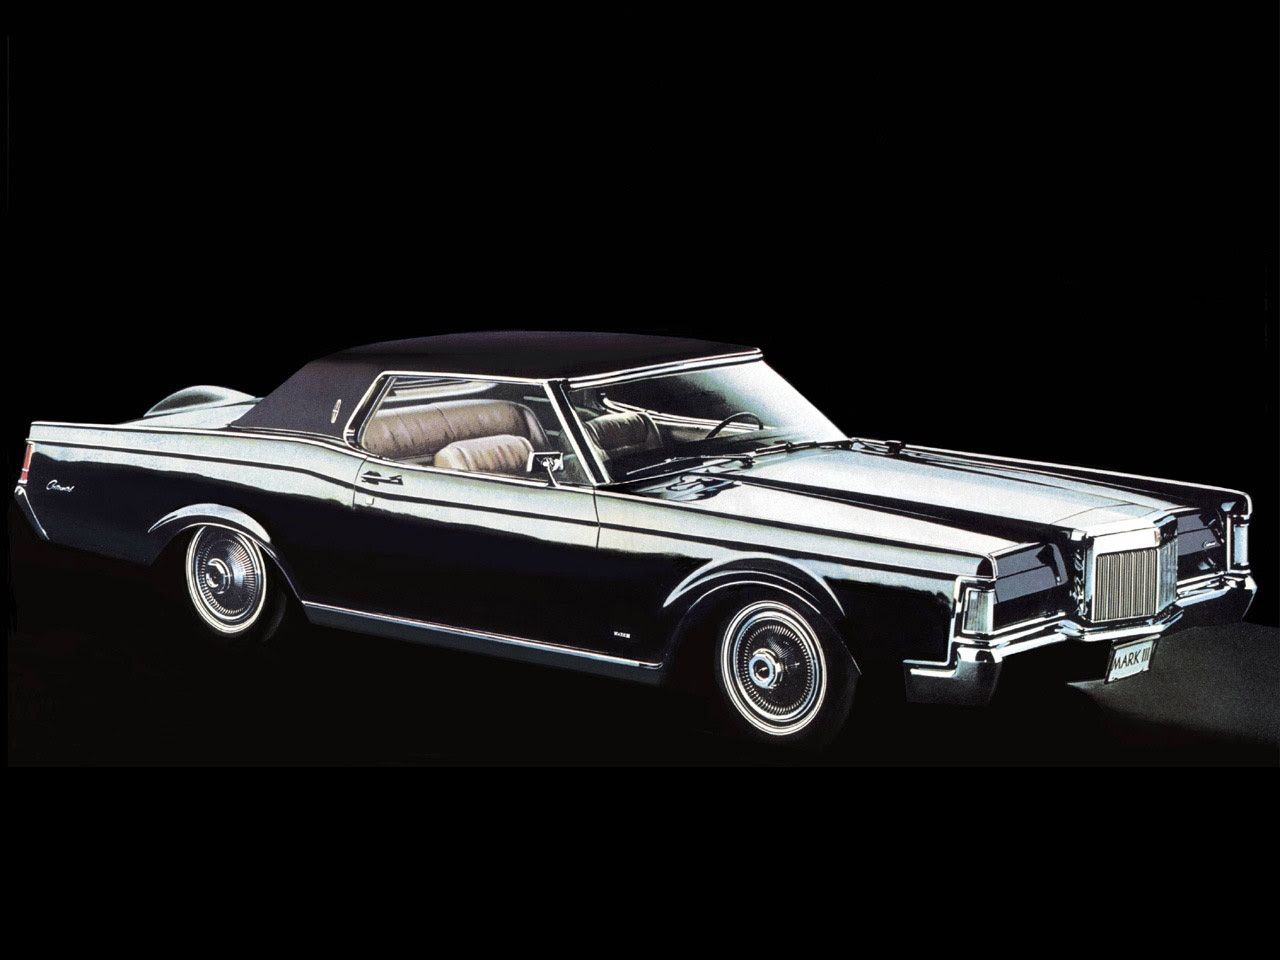 C7b260 1968 Lincoln Continental Wiring Diagram Wiring Resources